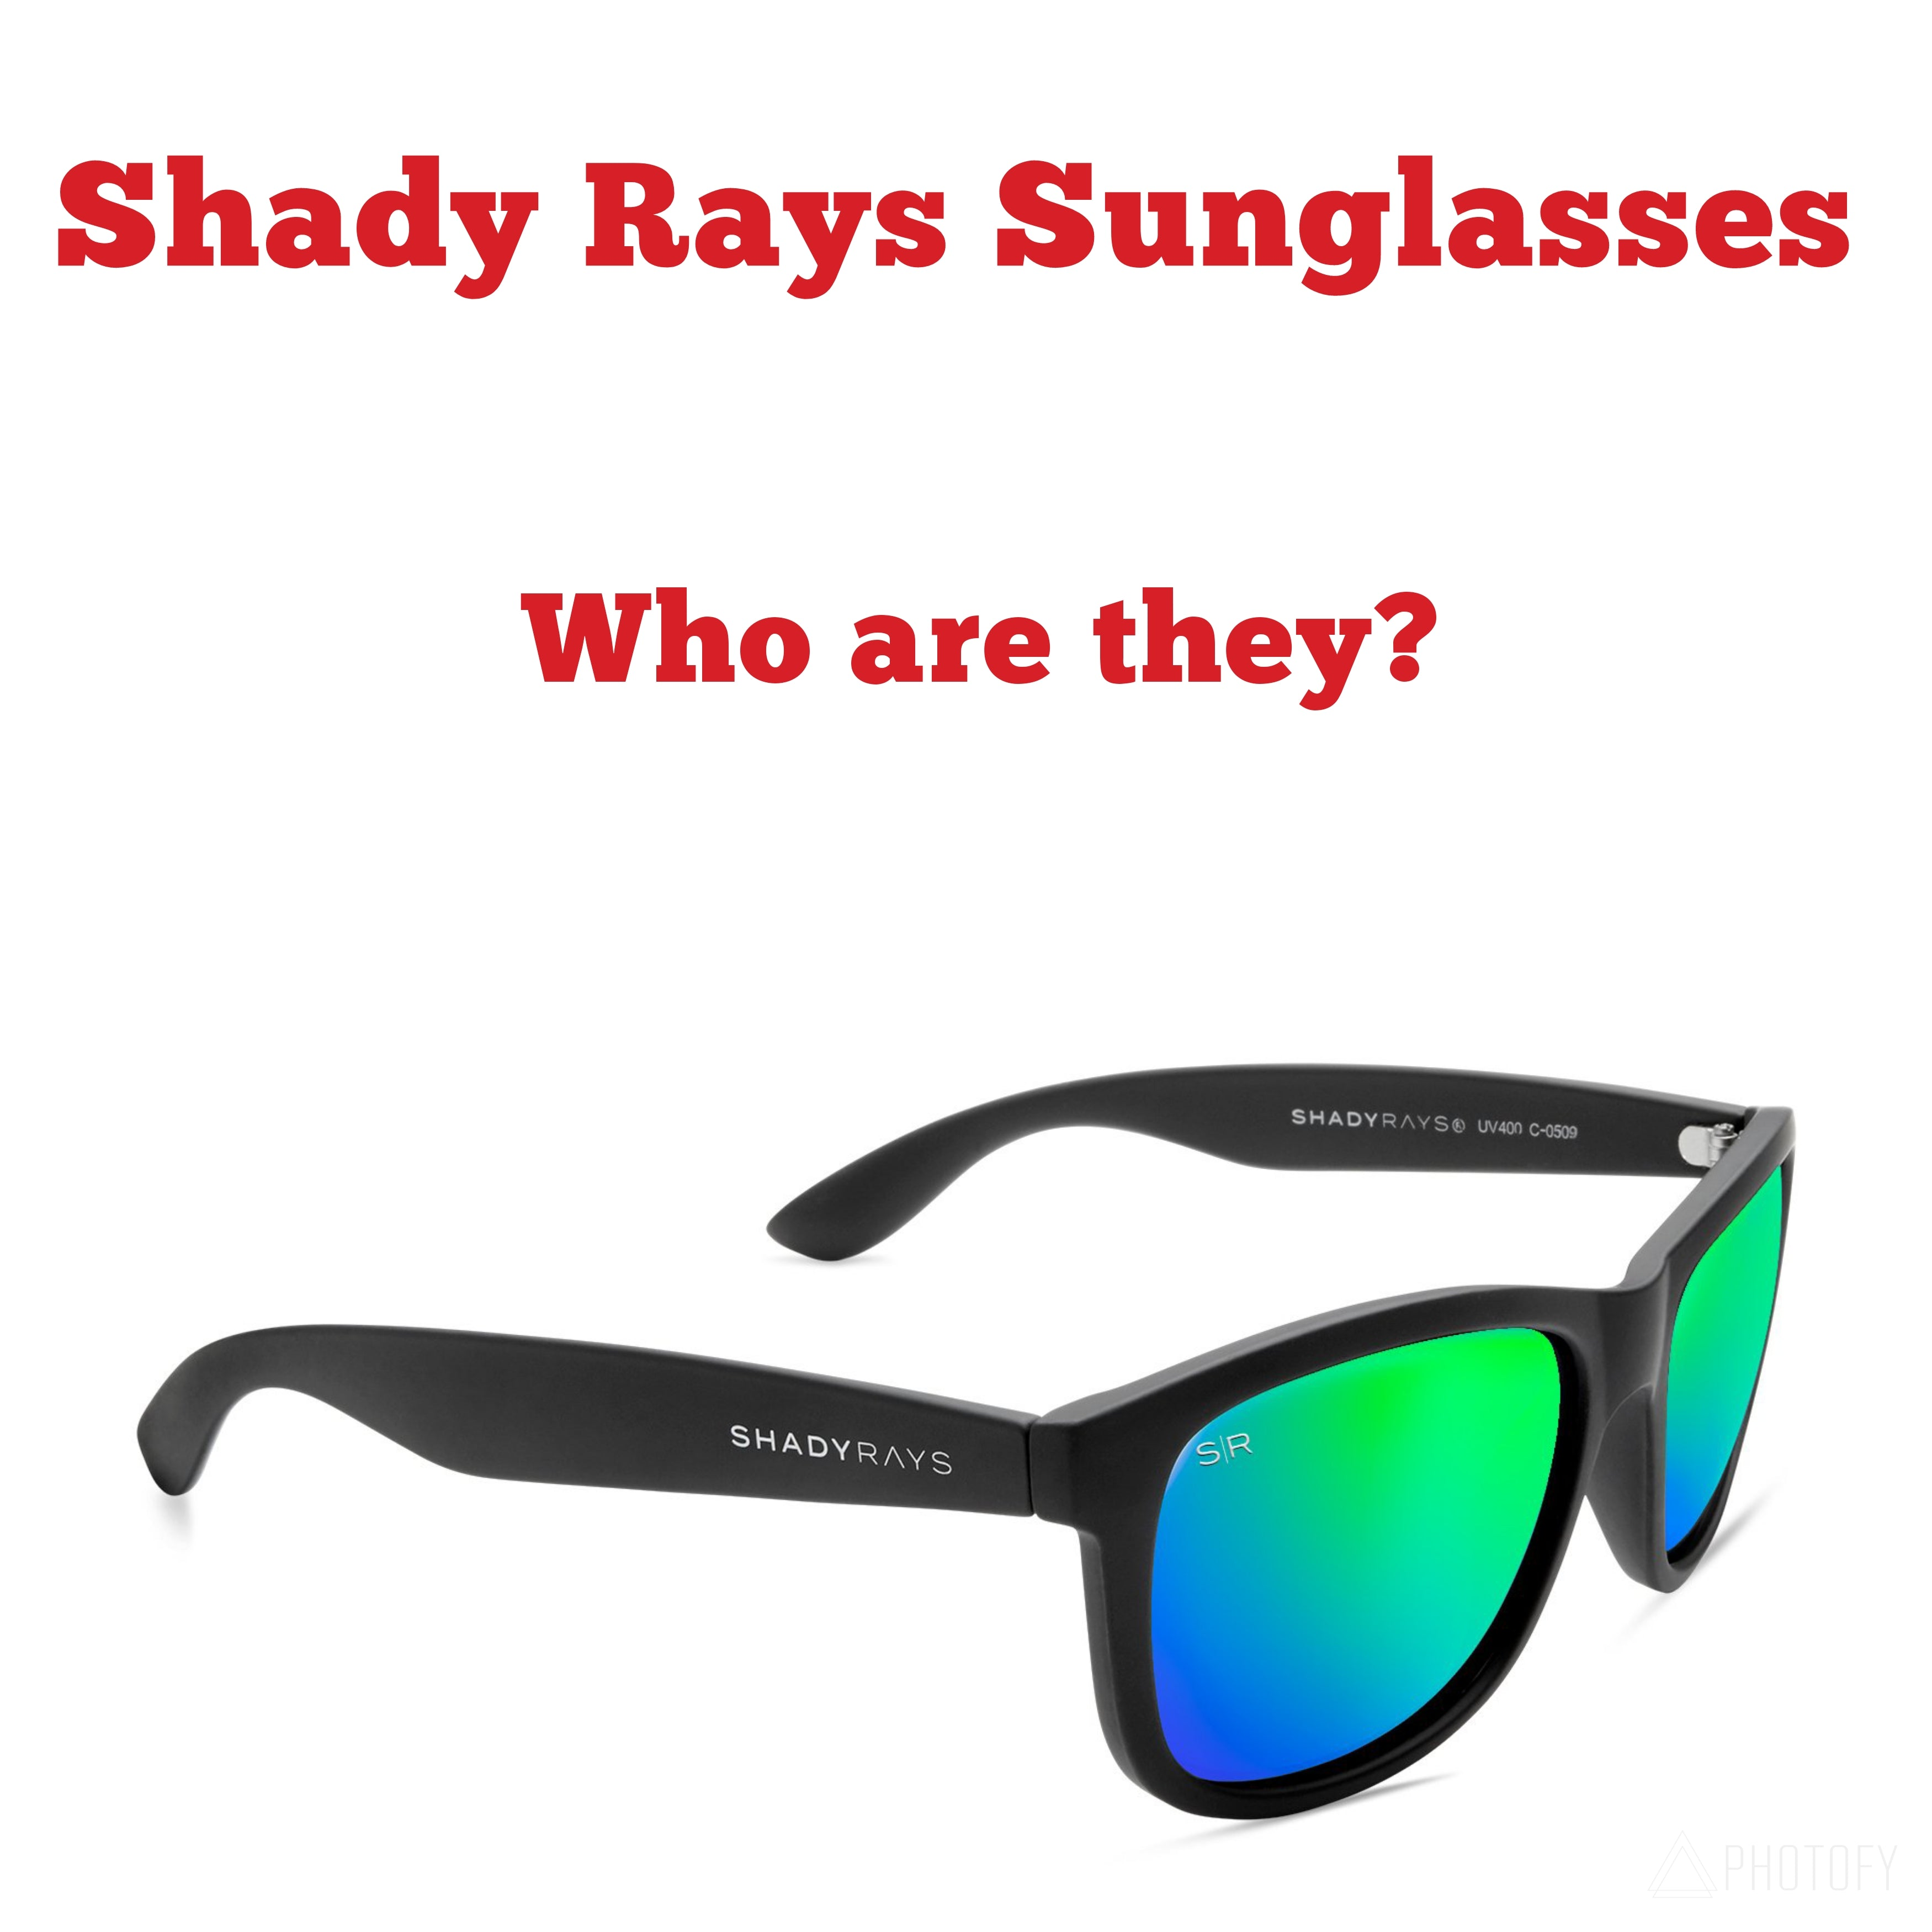 6c0a3f0b4c Shady Rays Sunglasses  Famous for their Signature Series and X-Series –  Sunshades Outlet